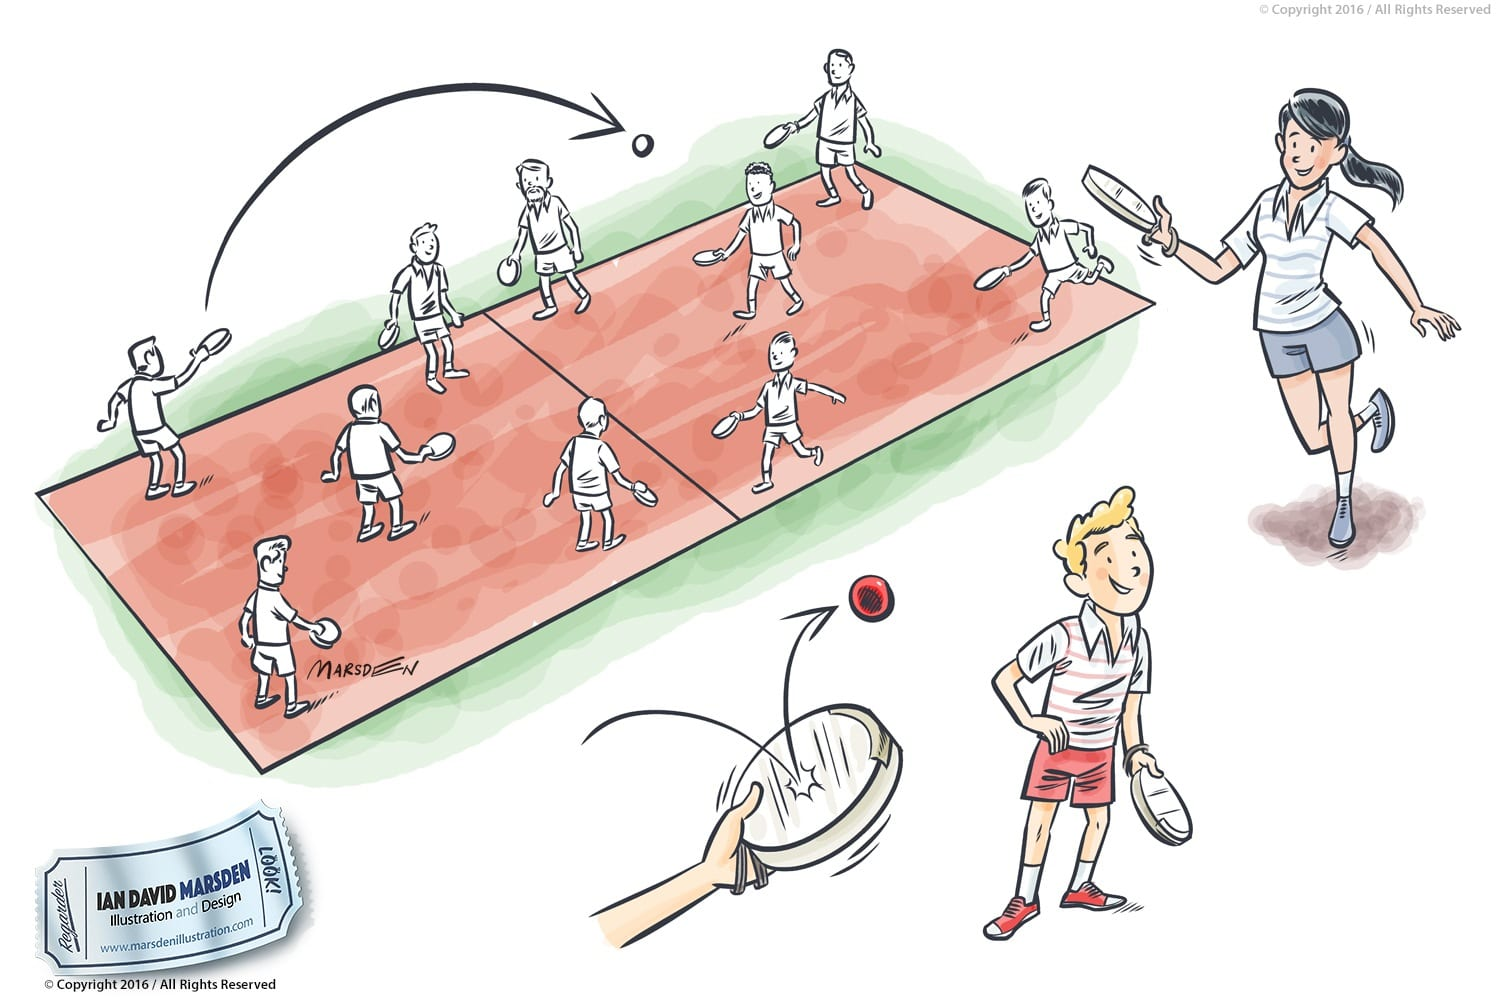 Tambour Sports Illustrations for Magazine